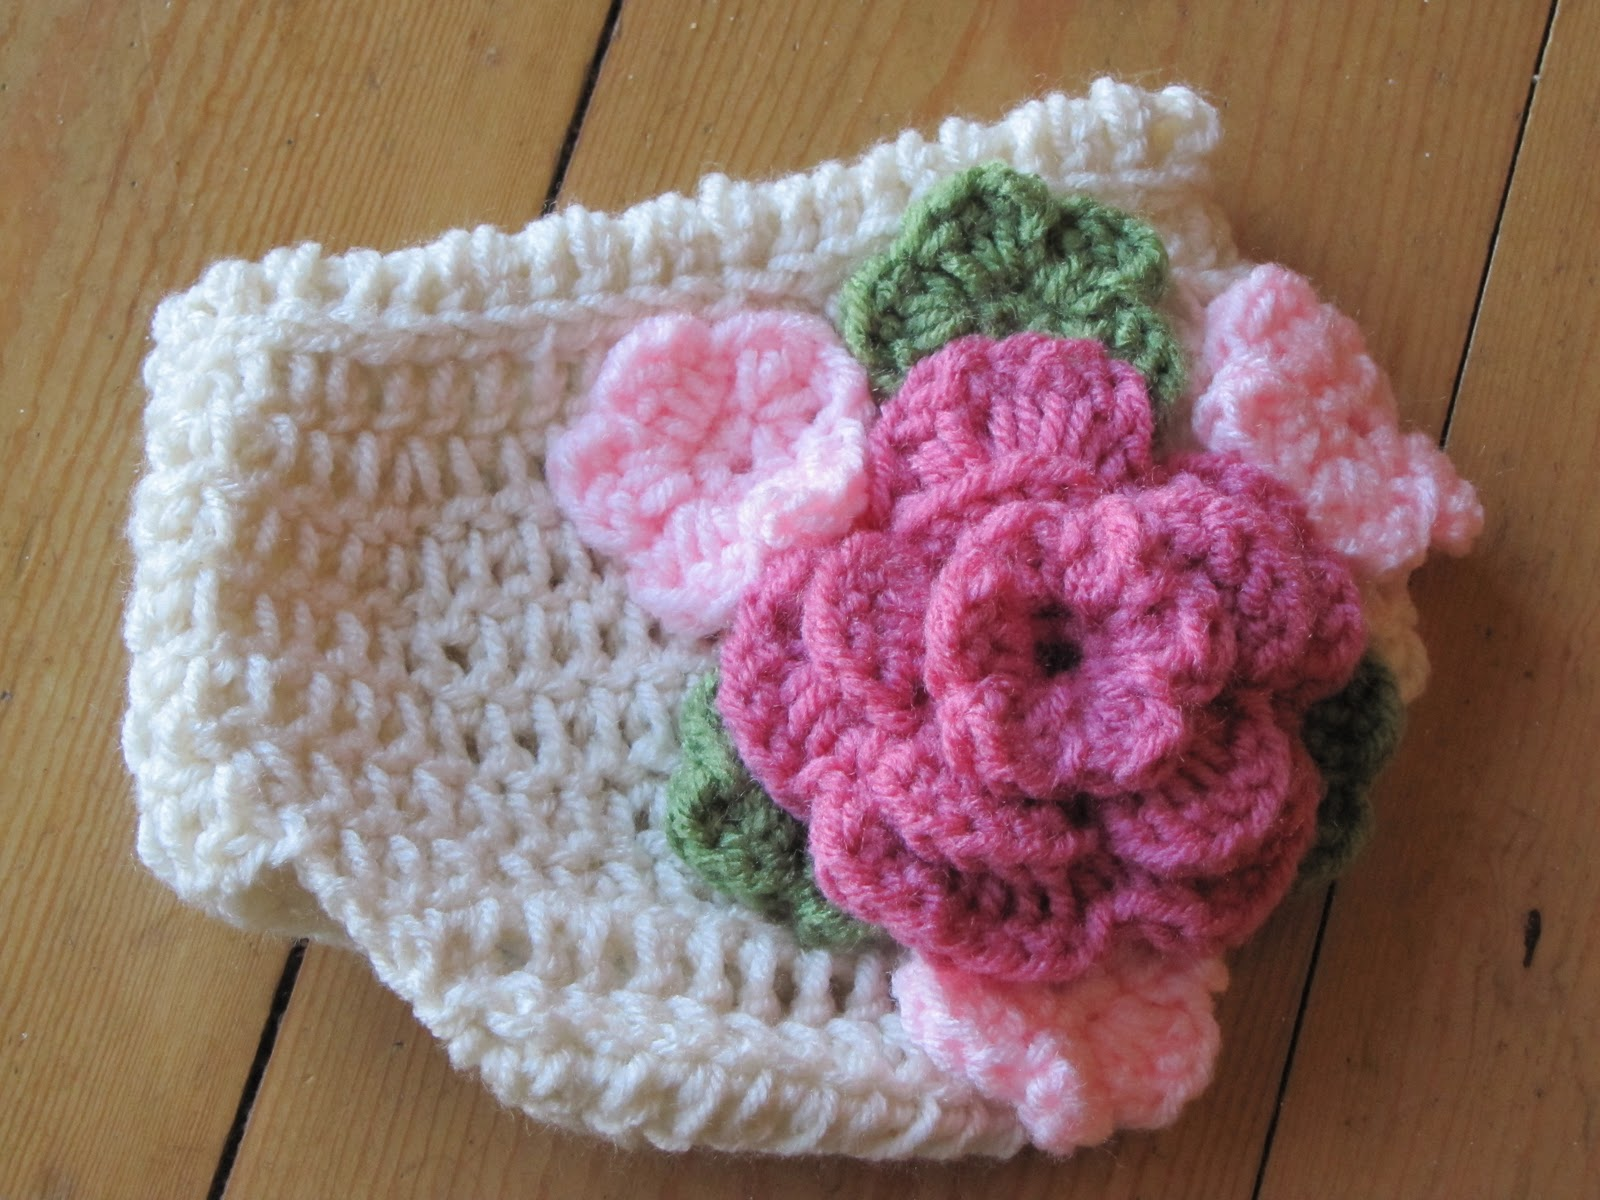 Crochet diaper cover pattern - Cloth Diapers  Parenting Community